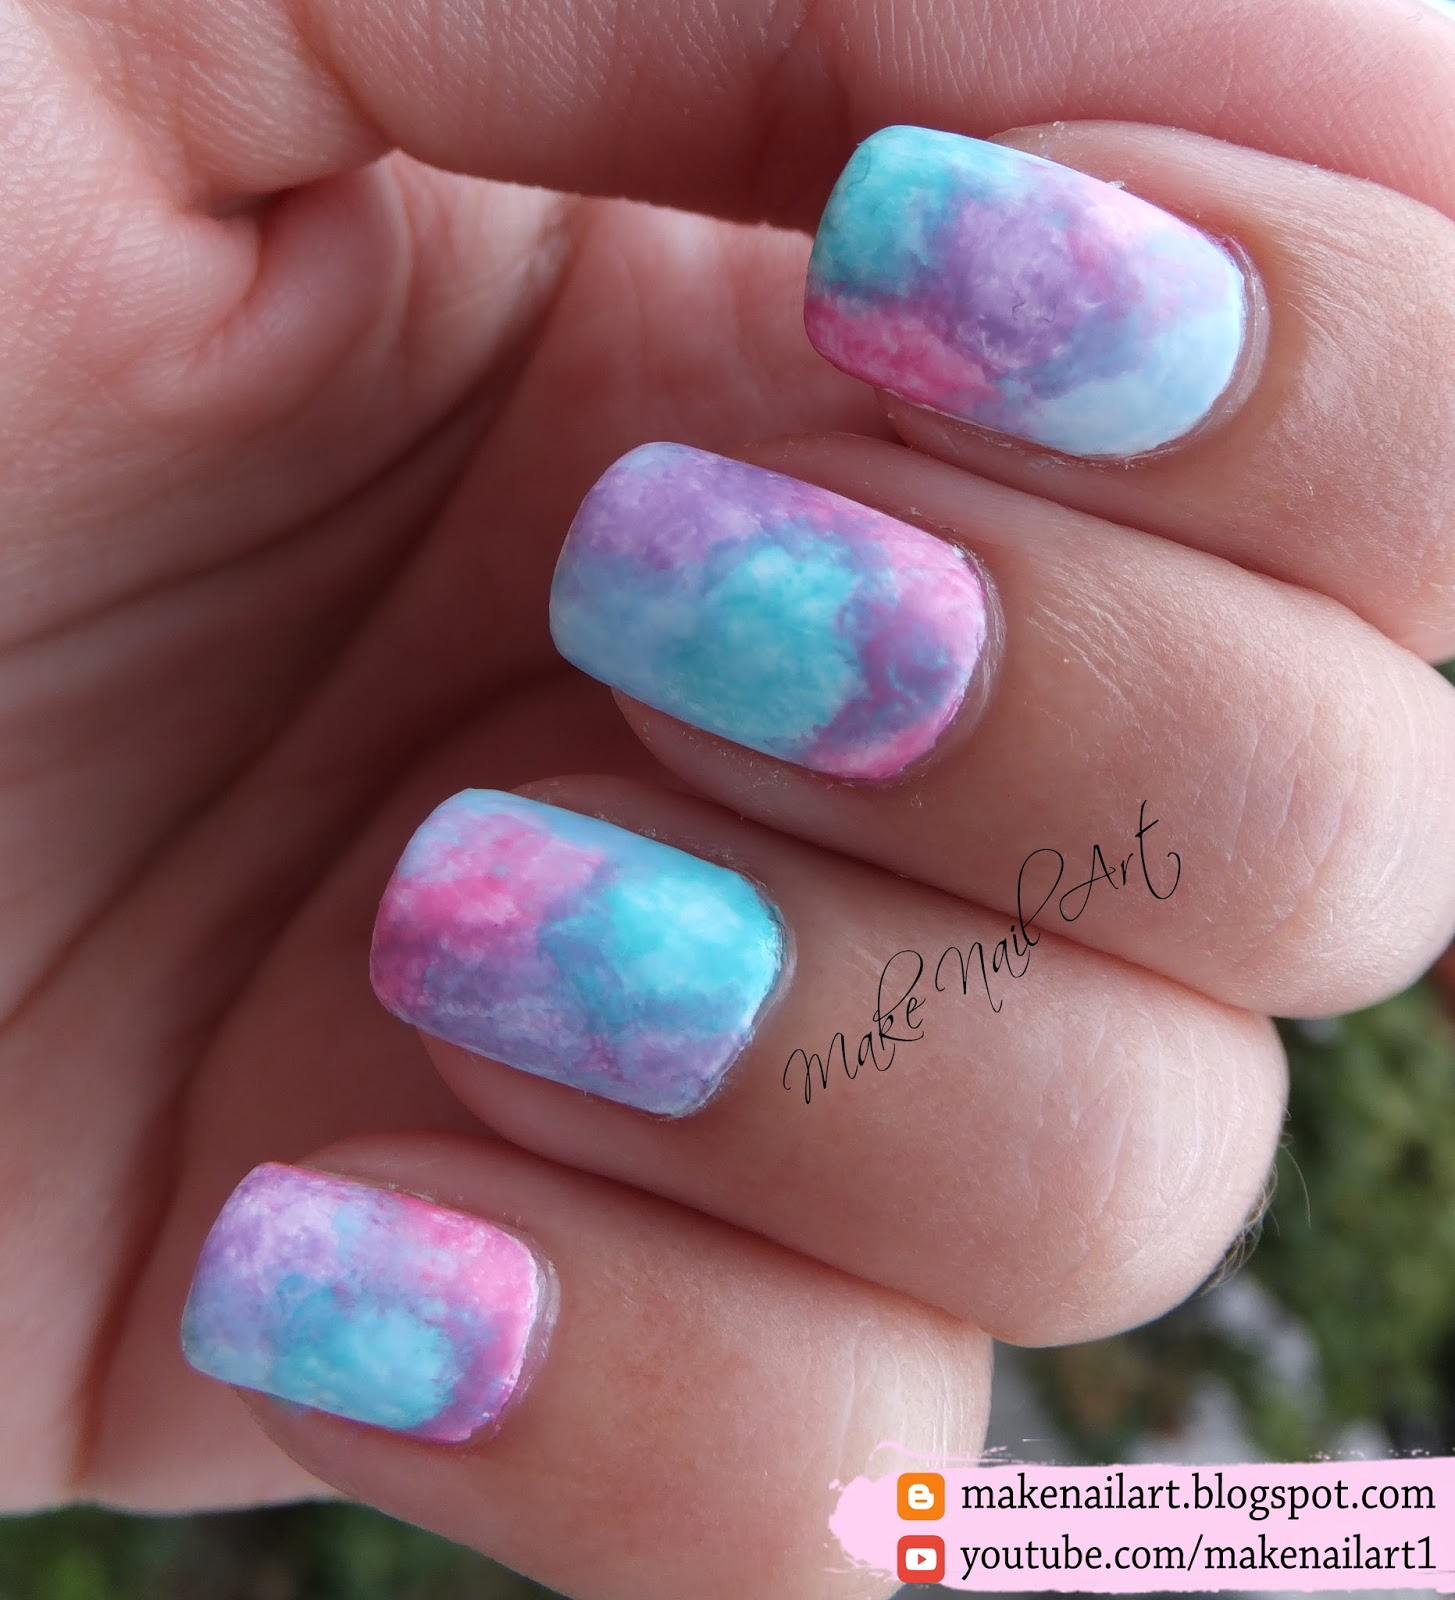 Make nail art easy watercolor pastel nail art design tutorial apply randomly on the nails i used four pastel colours light purple pink blue and green finish with a matte top coat for full tutorial check out the prinsesfo Image collections